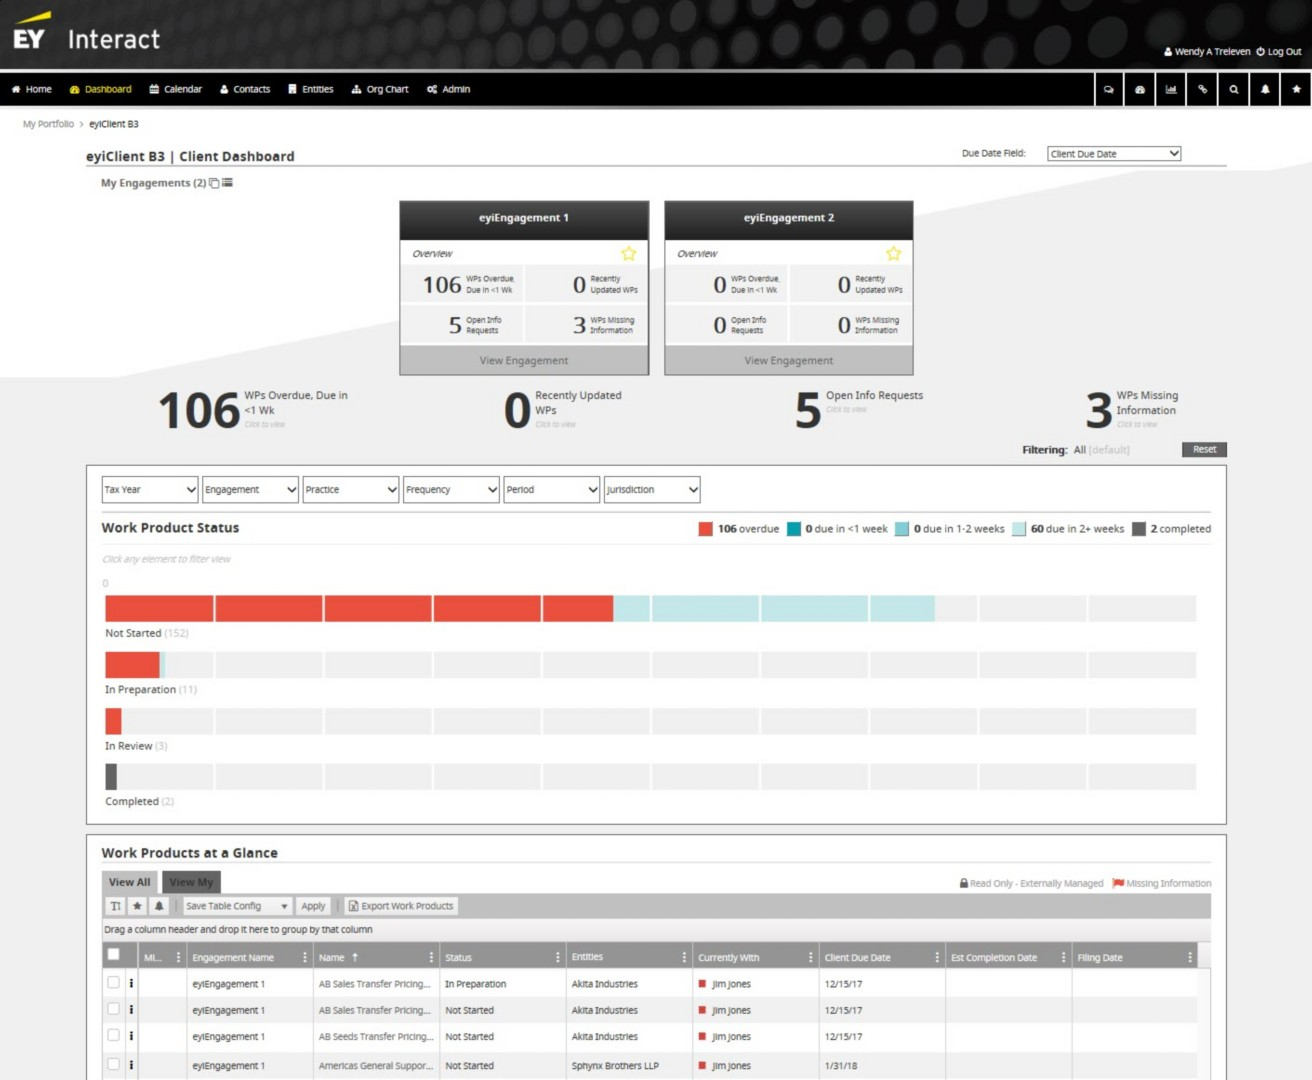 EY Interact – a closer look at the client dashboard